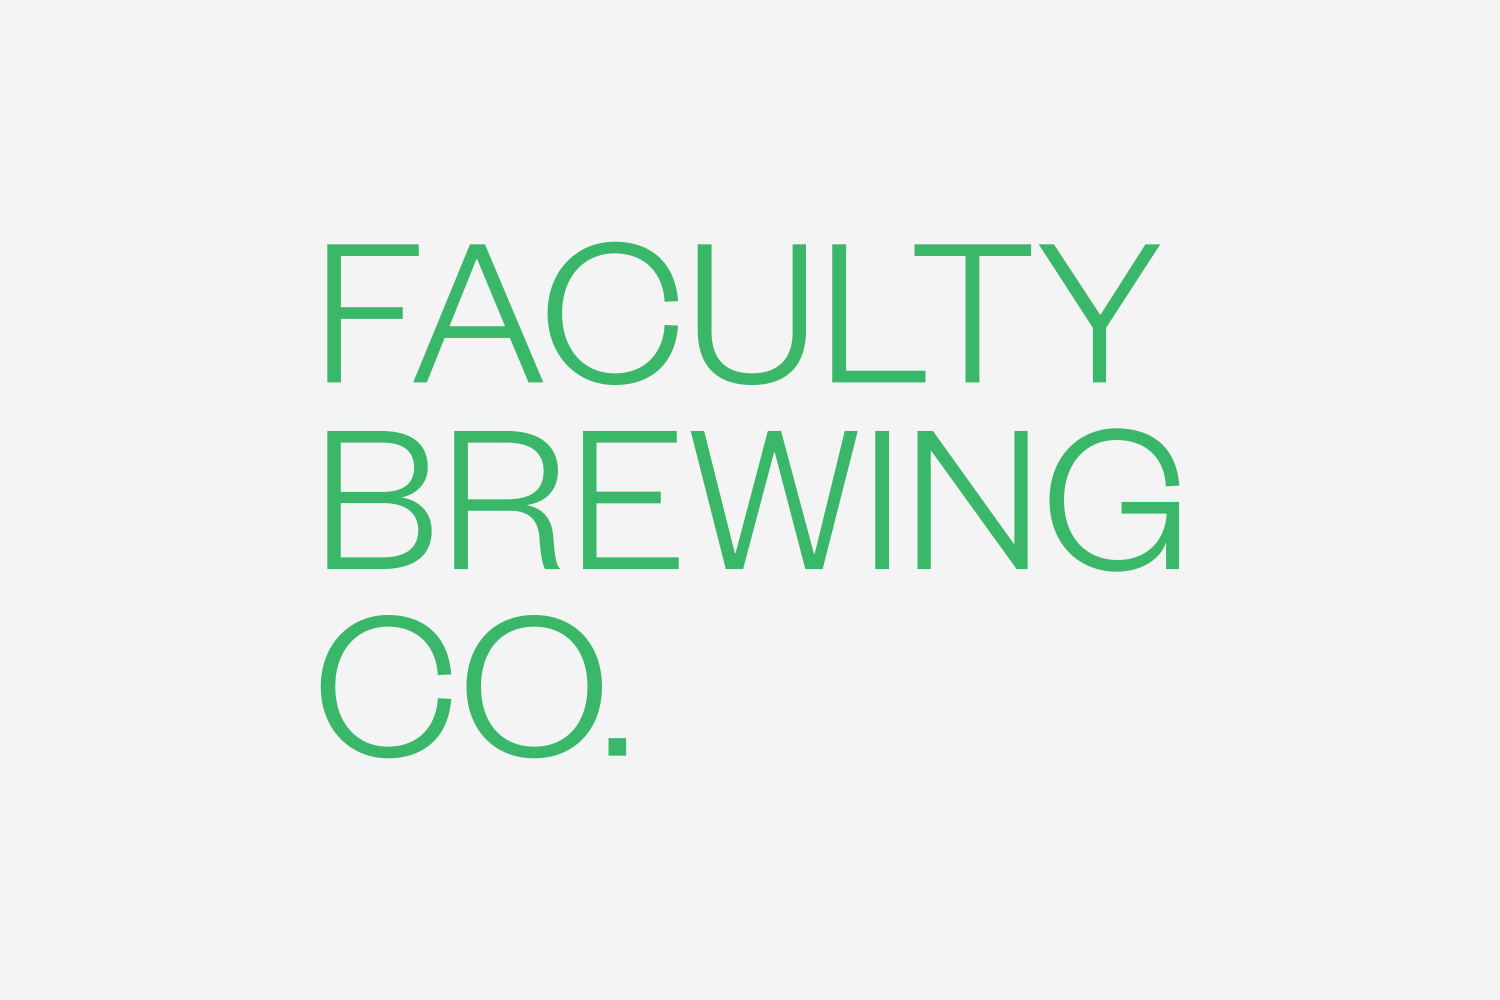 Logotype by Canadian graphic design studio Post Projects for Faculty Brewing Co.